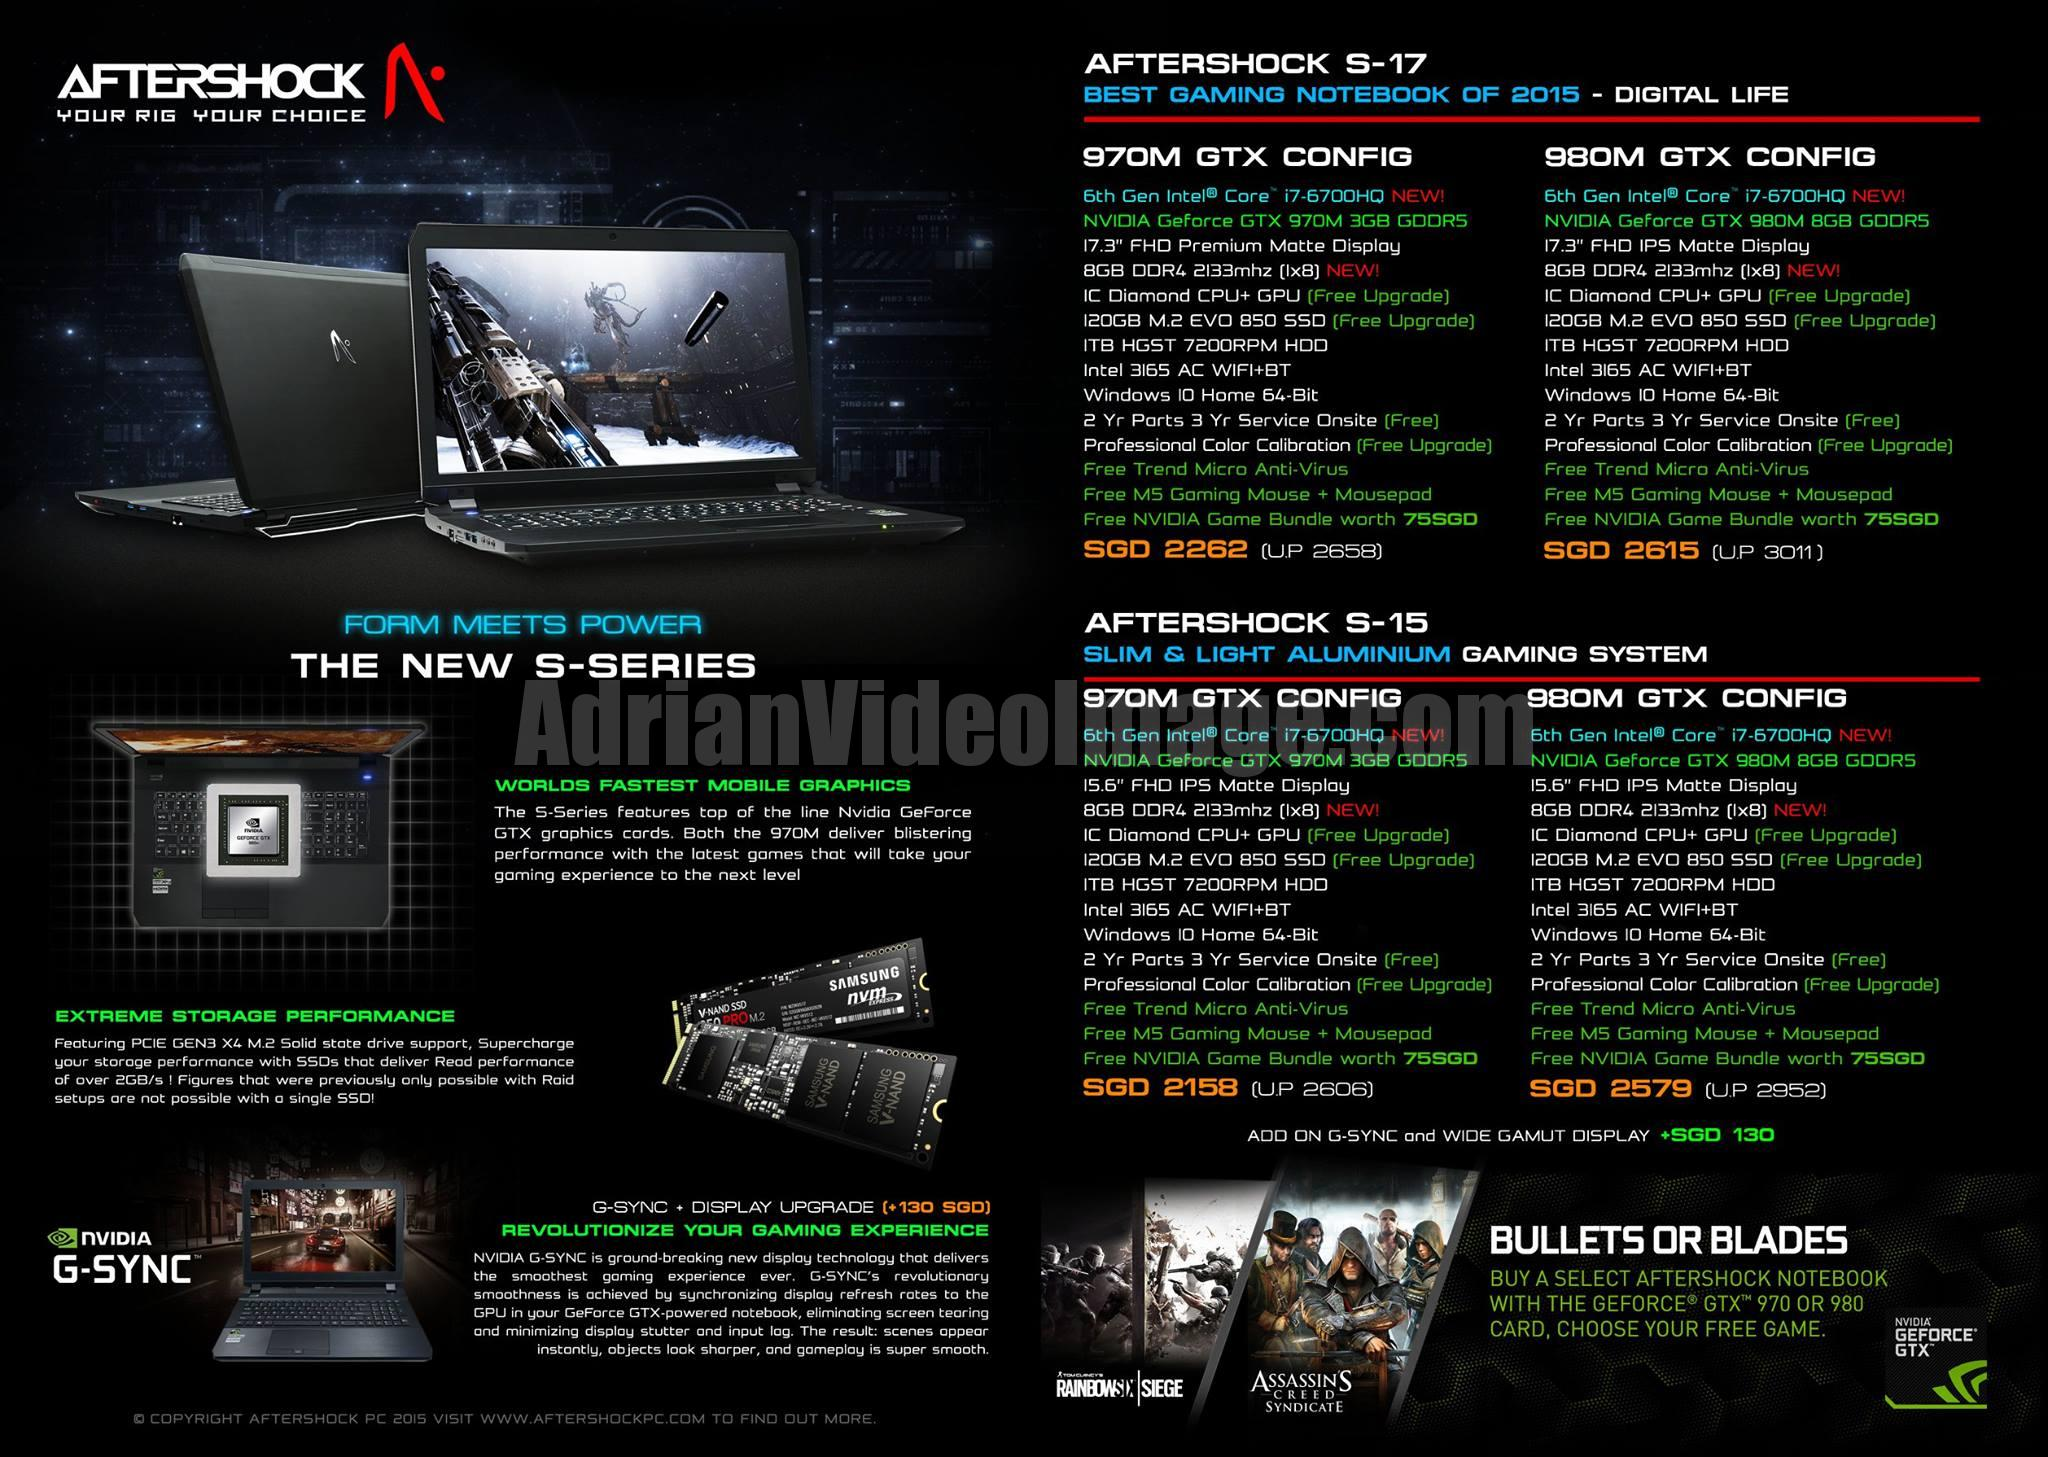 AfterShock PC Promotion 2015 - pg2 - New S-Series